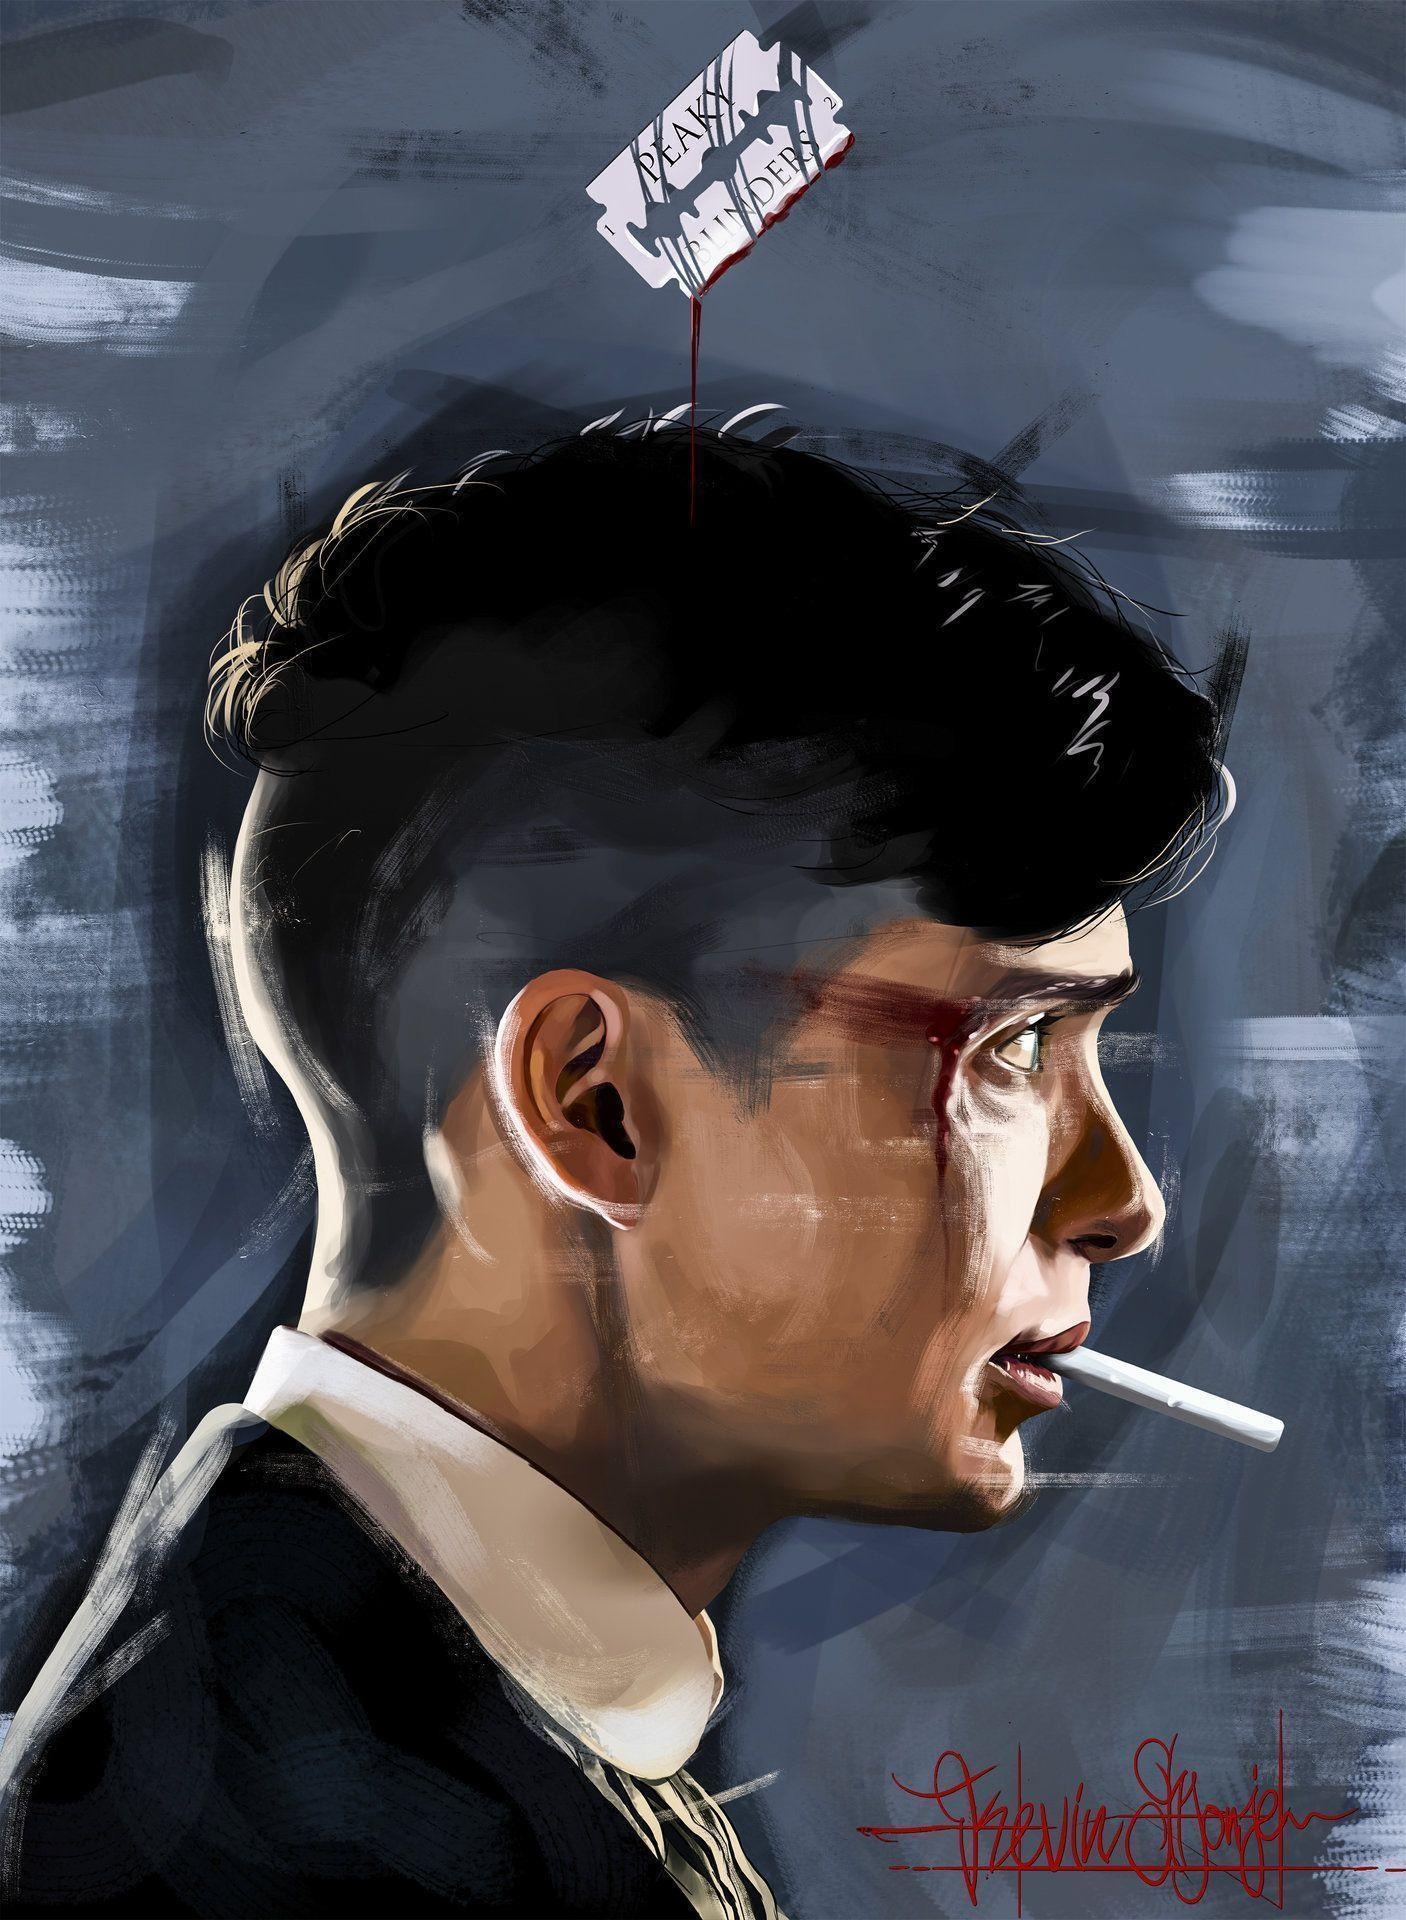 62829f65c33 Peaky Blinders Wallpapers for Iphone 7, Iphone 7 plus, Iphone 6 plus